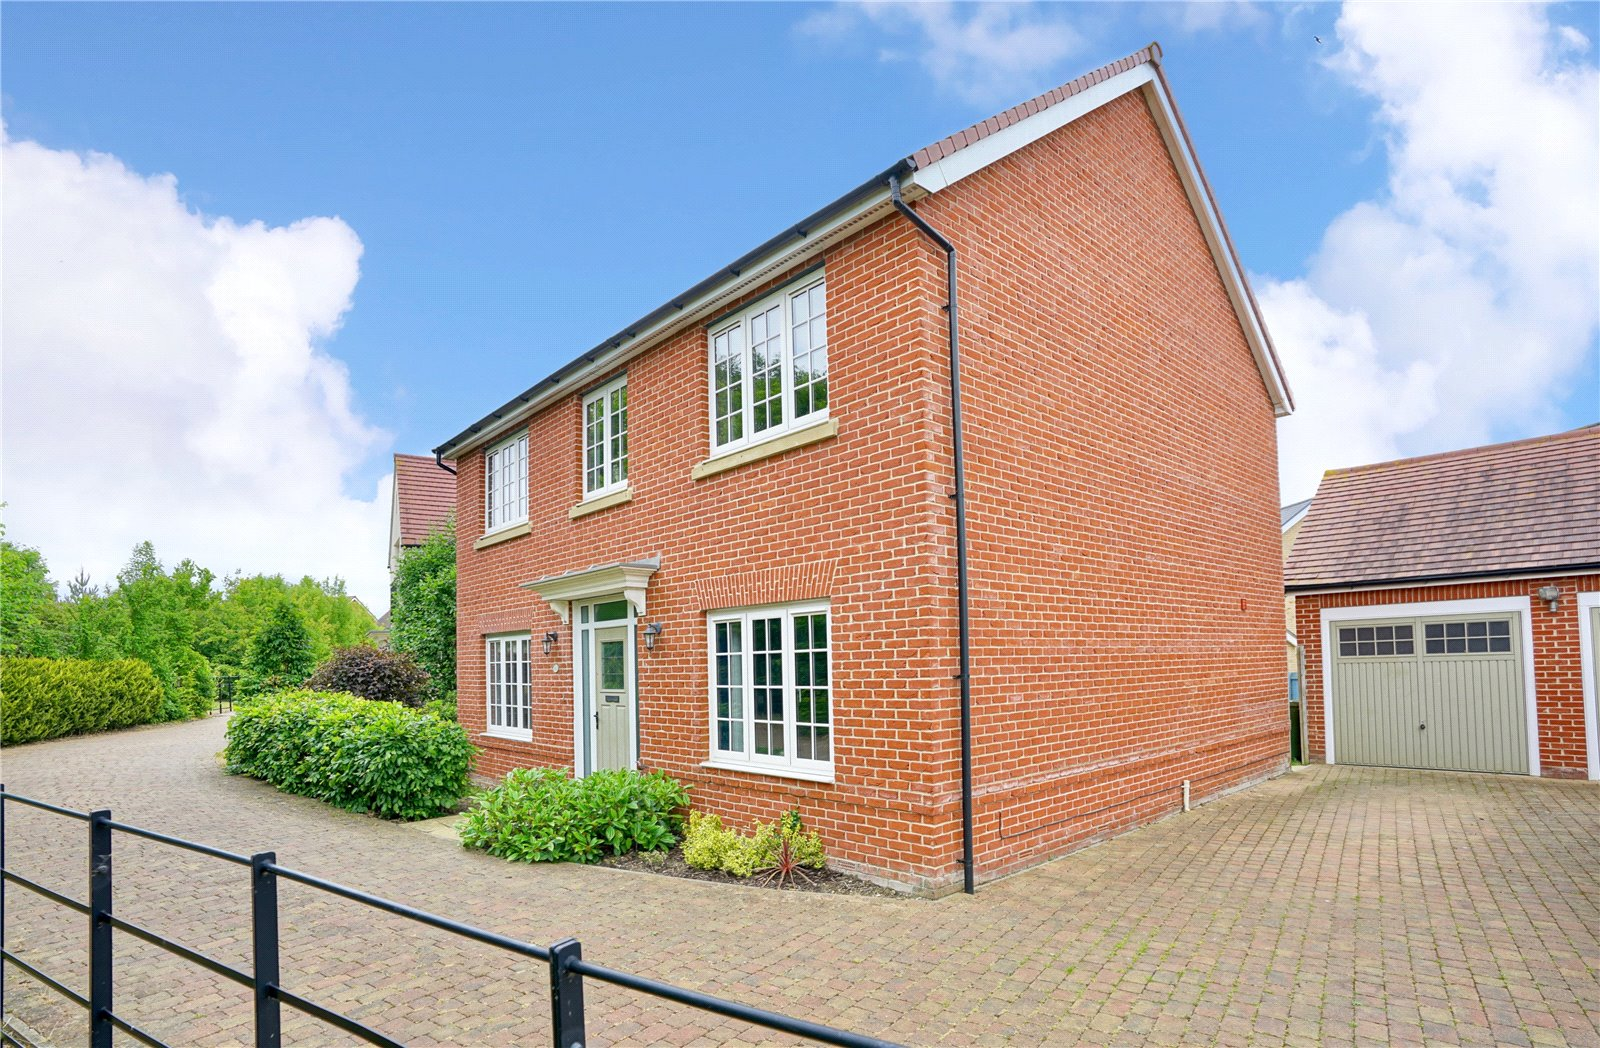 4 bed house for sale in Field Gate Close, St. Neots 0